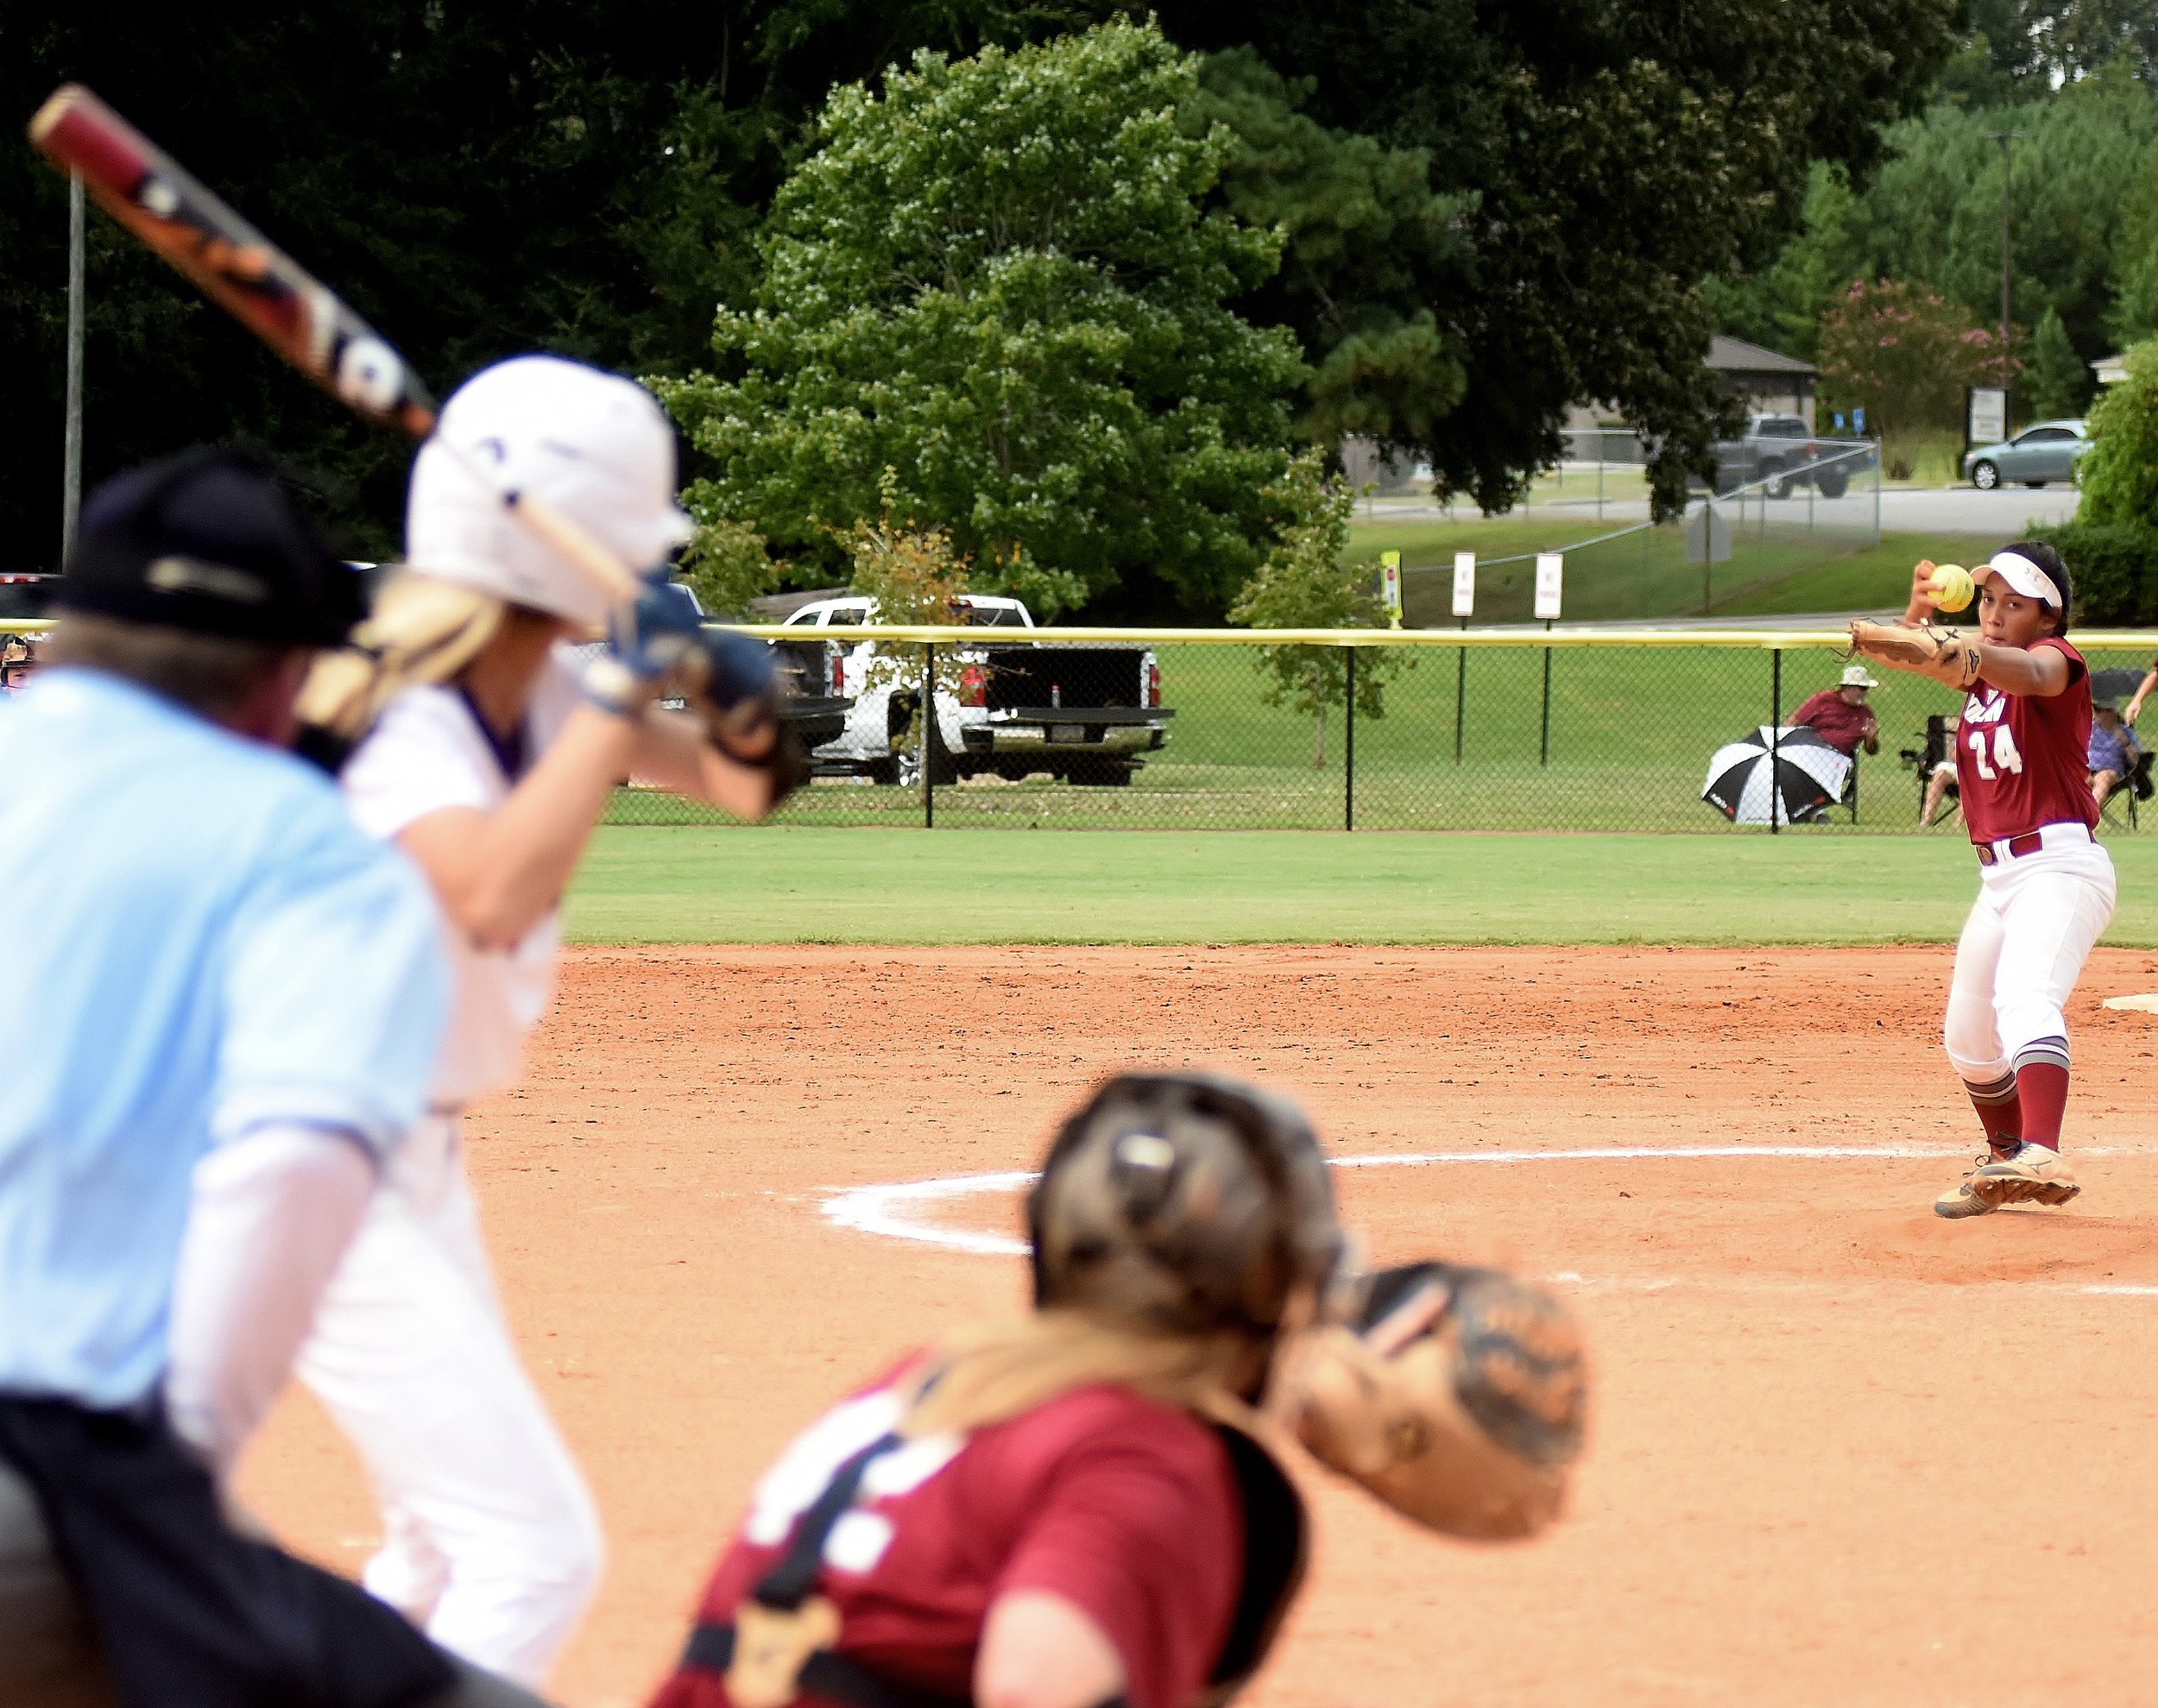 Woodland's Sarah Baynard delivers to the plate Saturday against Cartersville at Hamilton Crossing. The Wildcats earned an 11-3, five-inning win behind Baynard's complete-game effort.